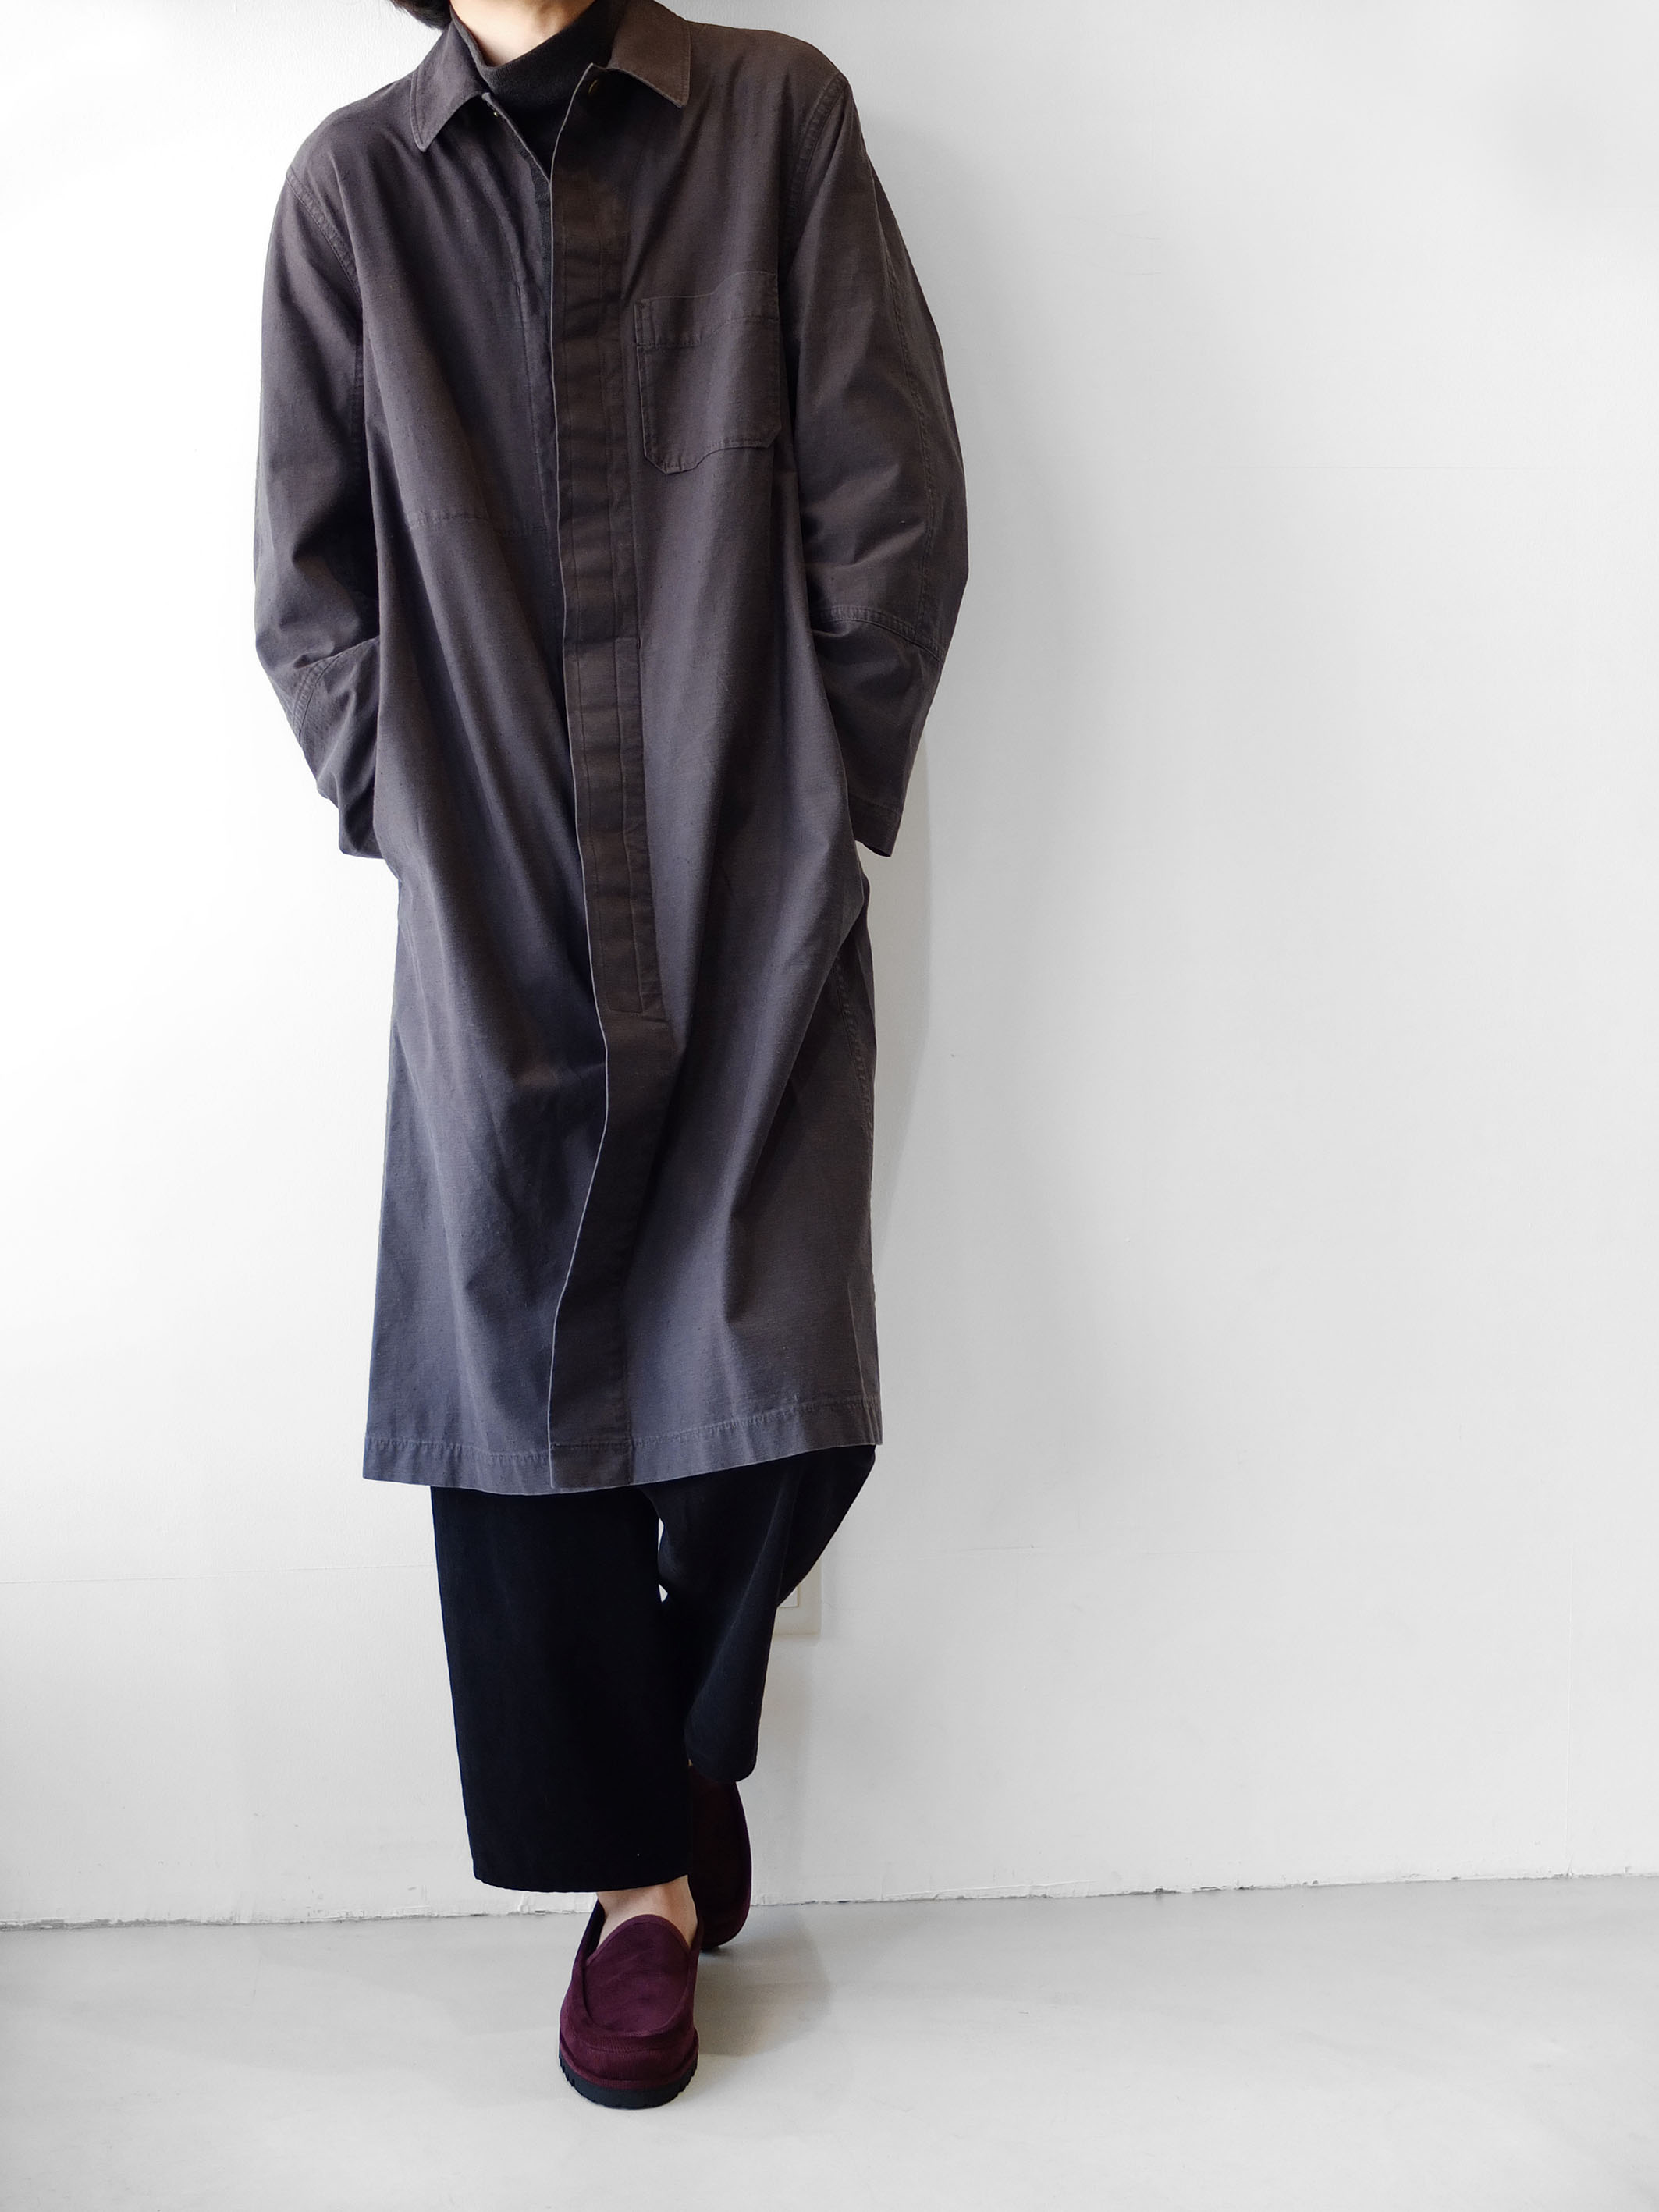 style_sample_21_a